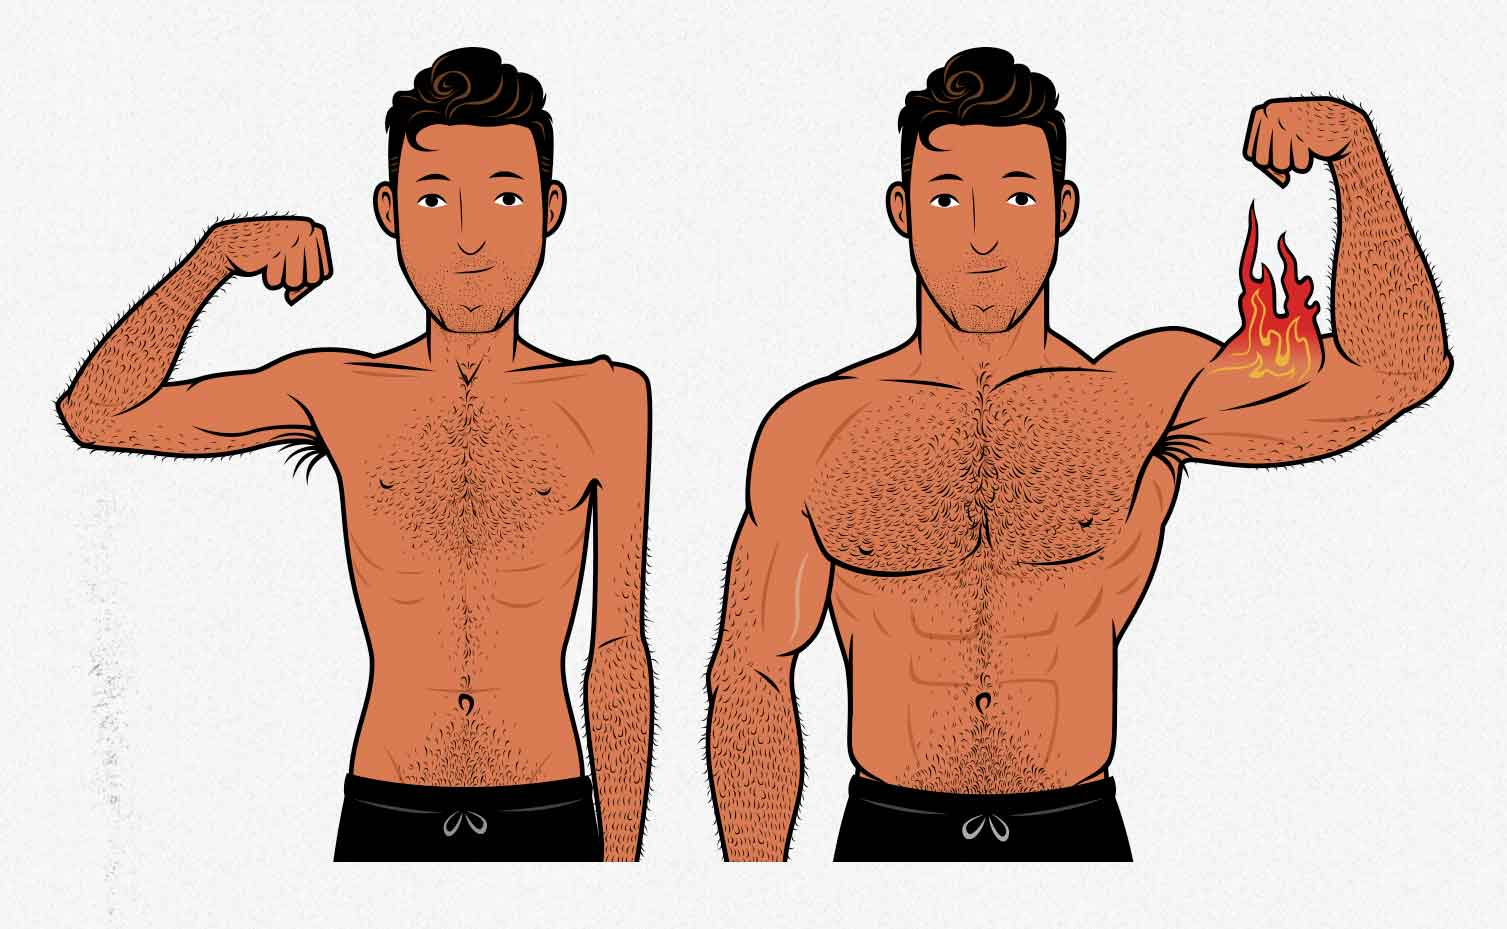 Illustration showing the results of a skinny guy building bigger arms.